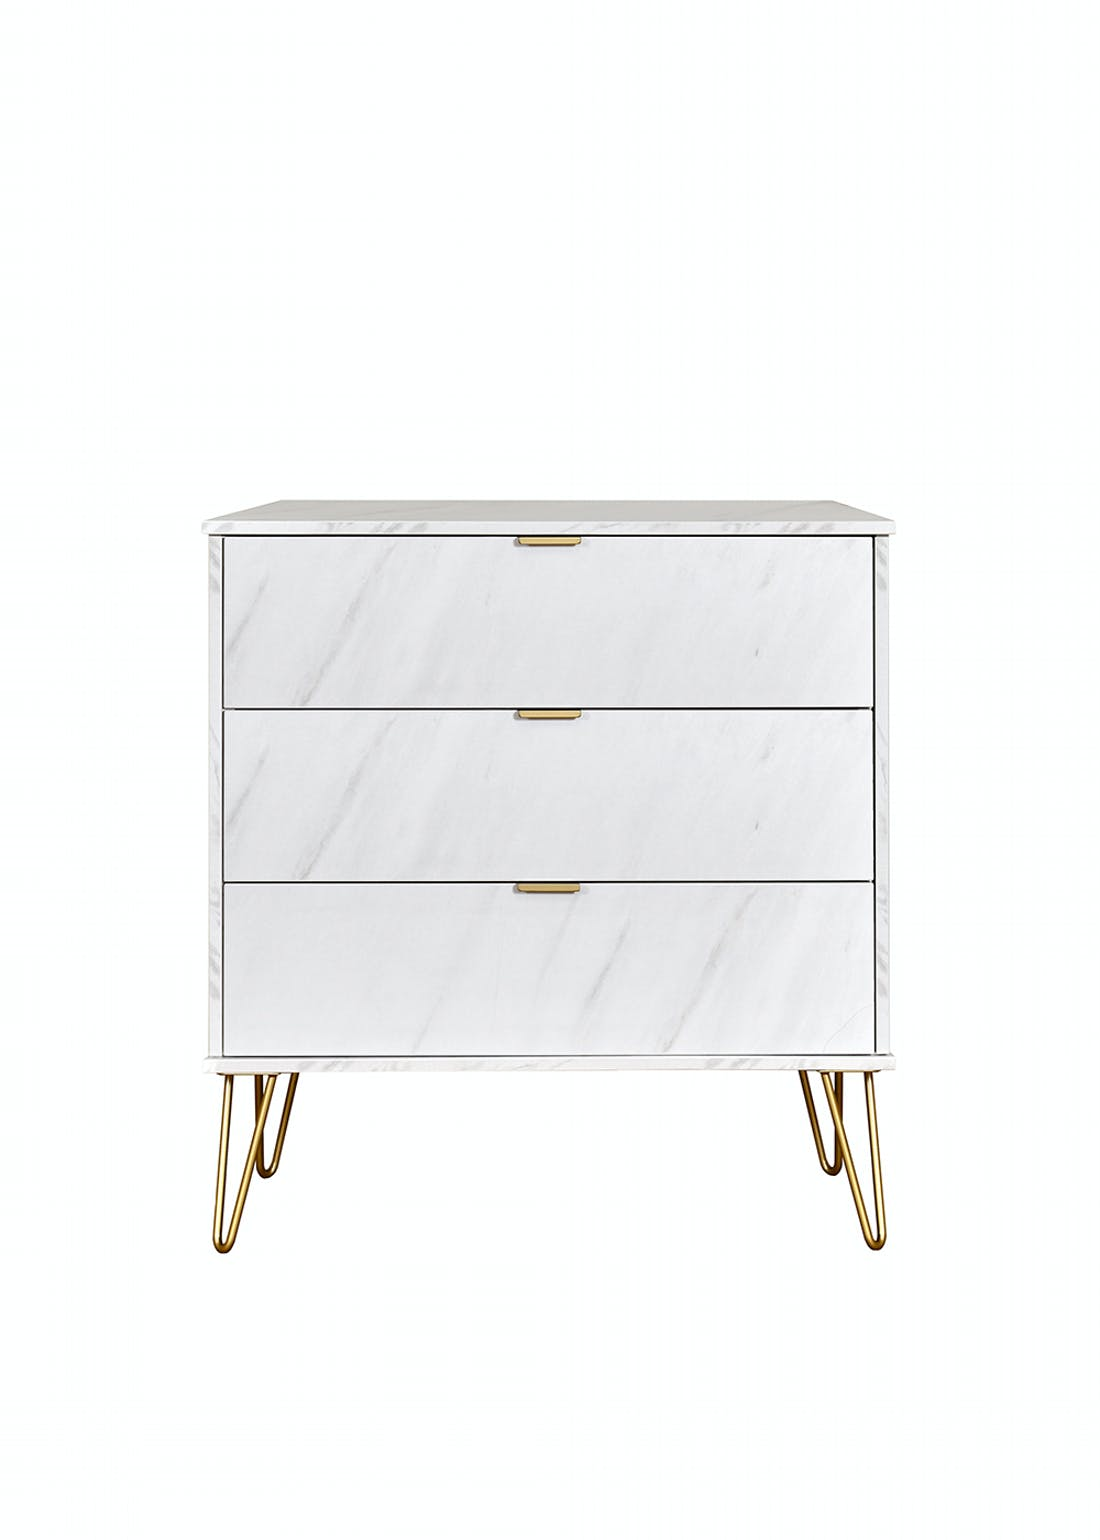 Swift Milano 3 Drawer Chest (74cm x 76.5cm x 39.5cm)